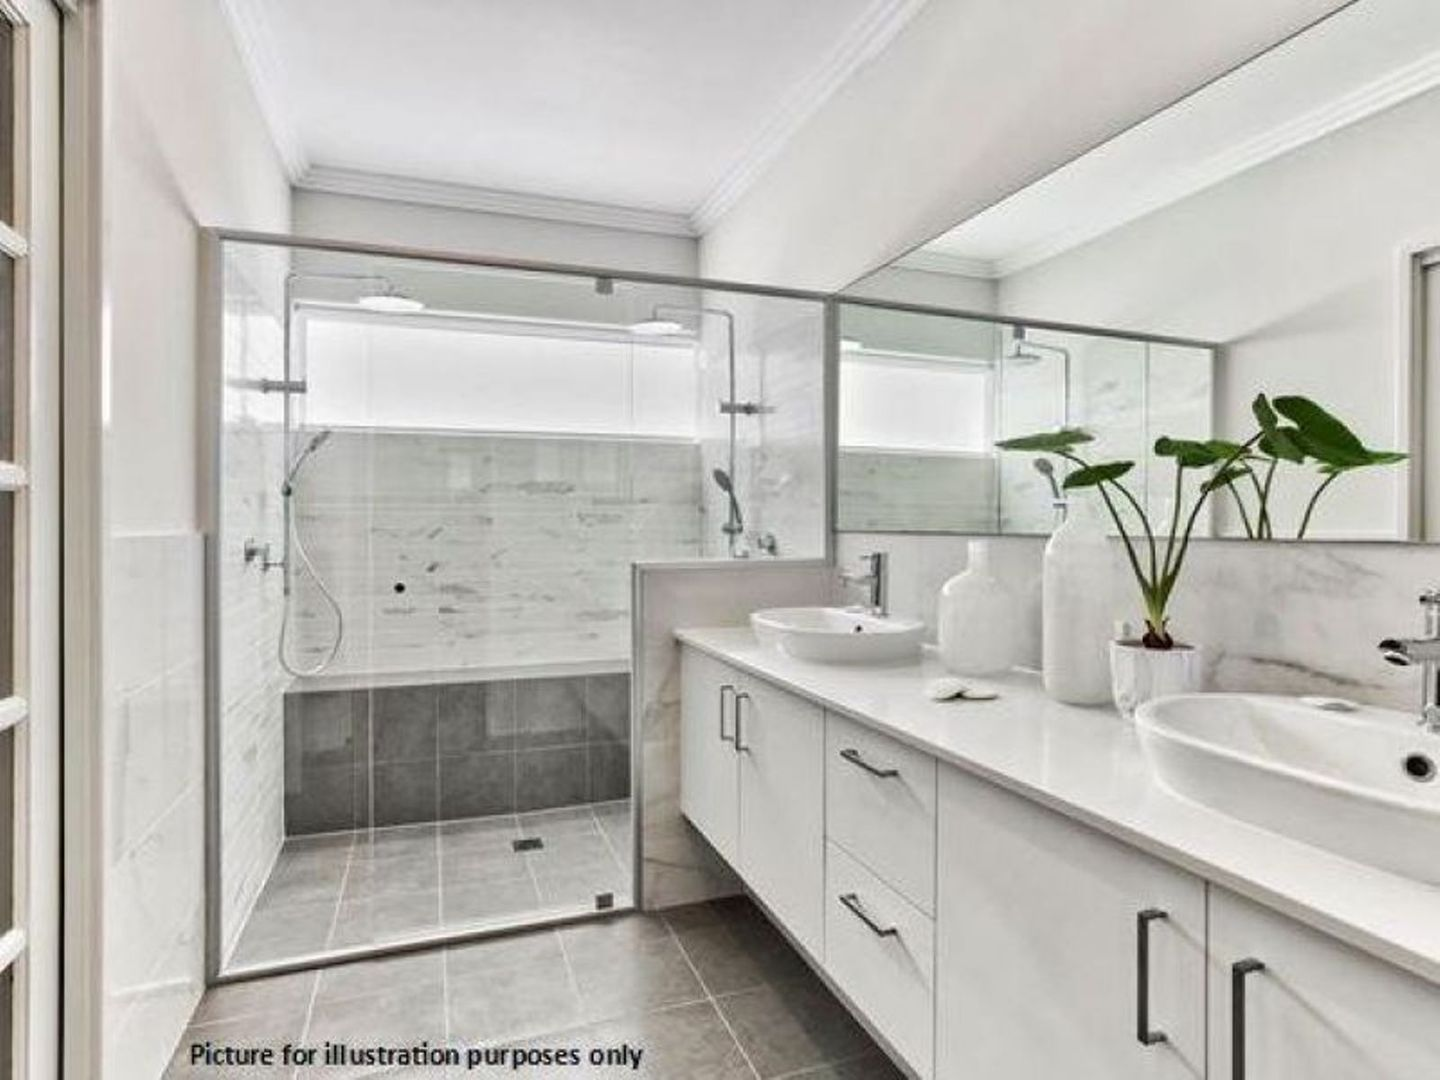 48 Harris Road, House & Land Packages, Busselton WA 6280, Image 2